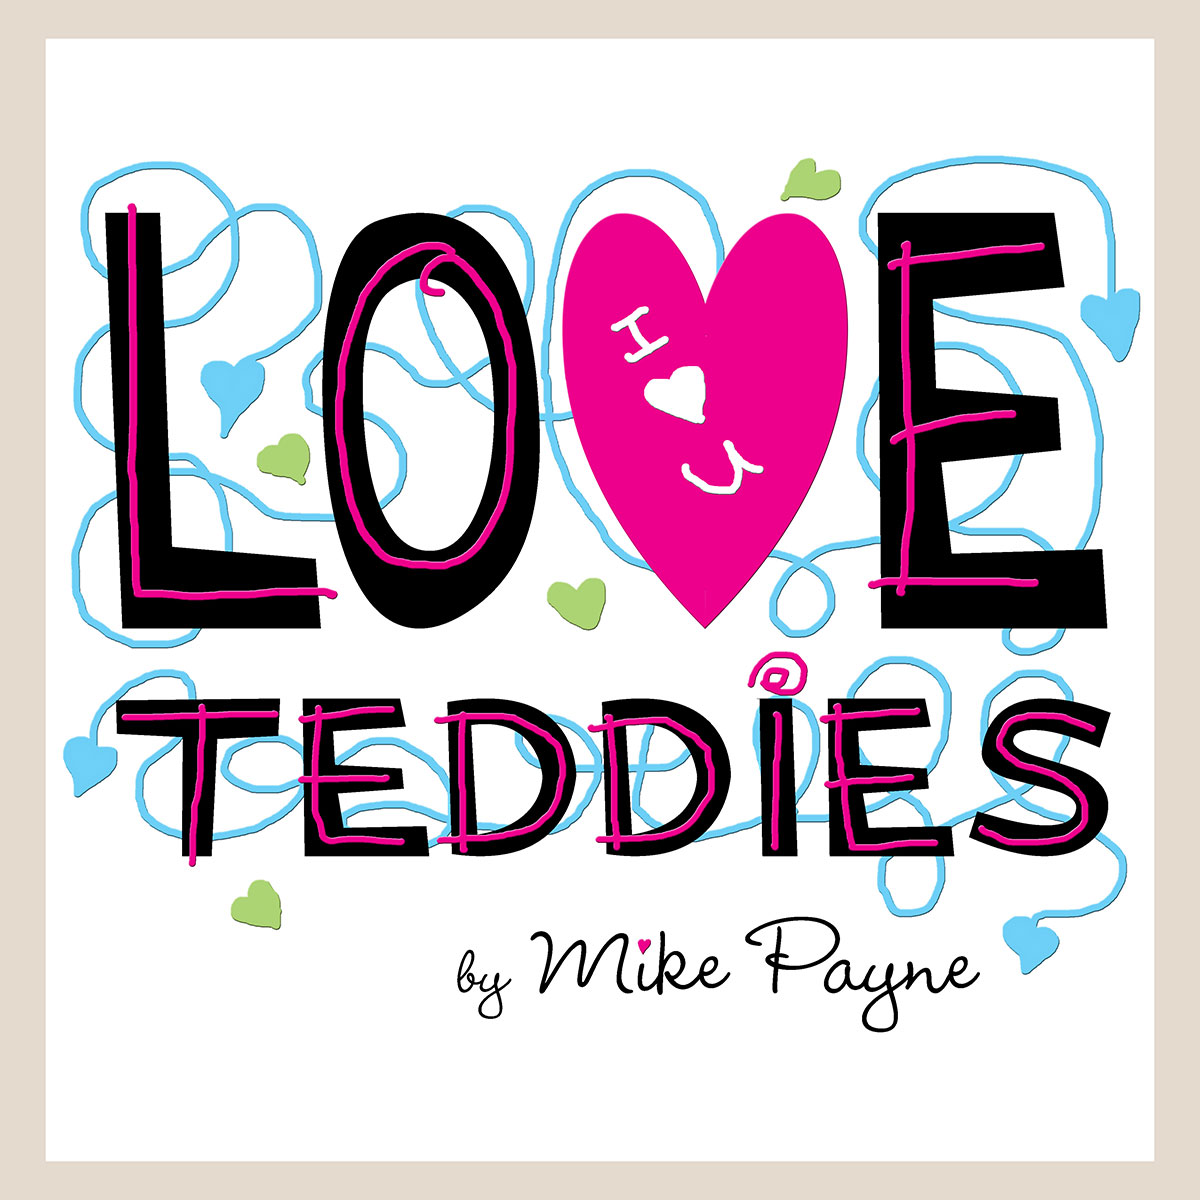 Love Teddies logo